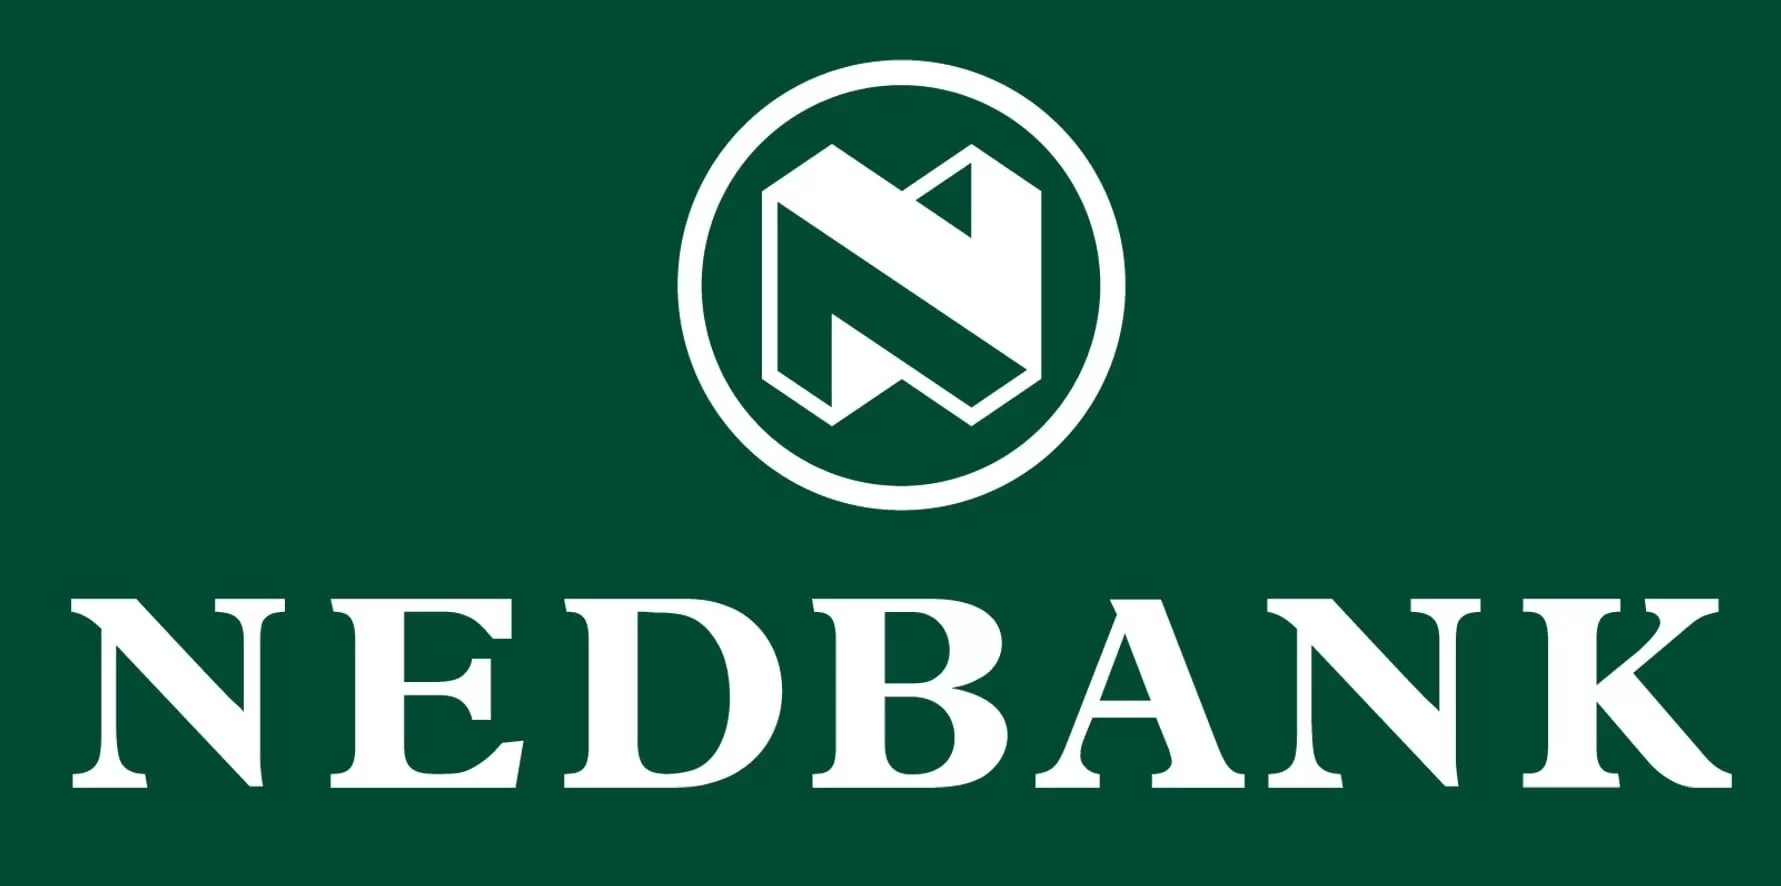 Nedbank Business Pay As You Use account